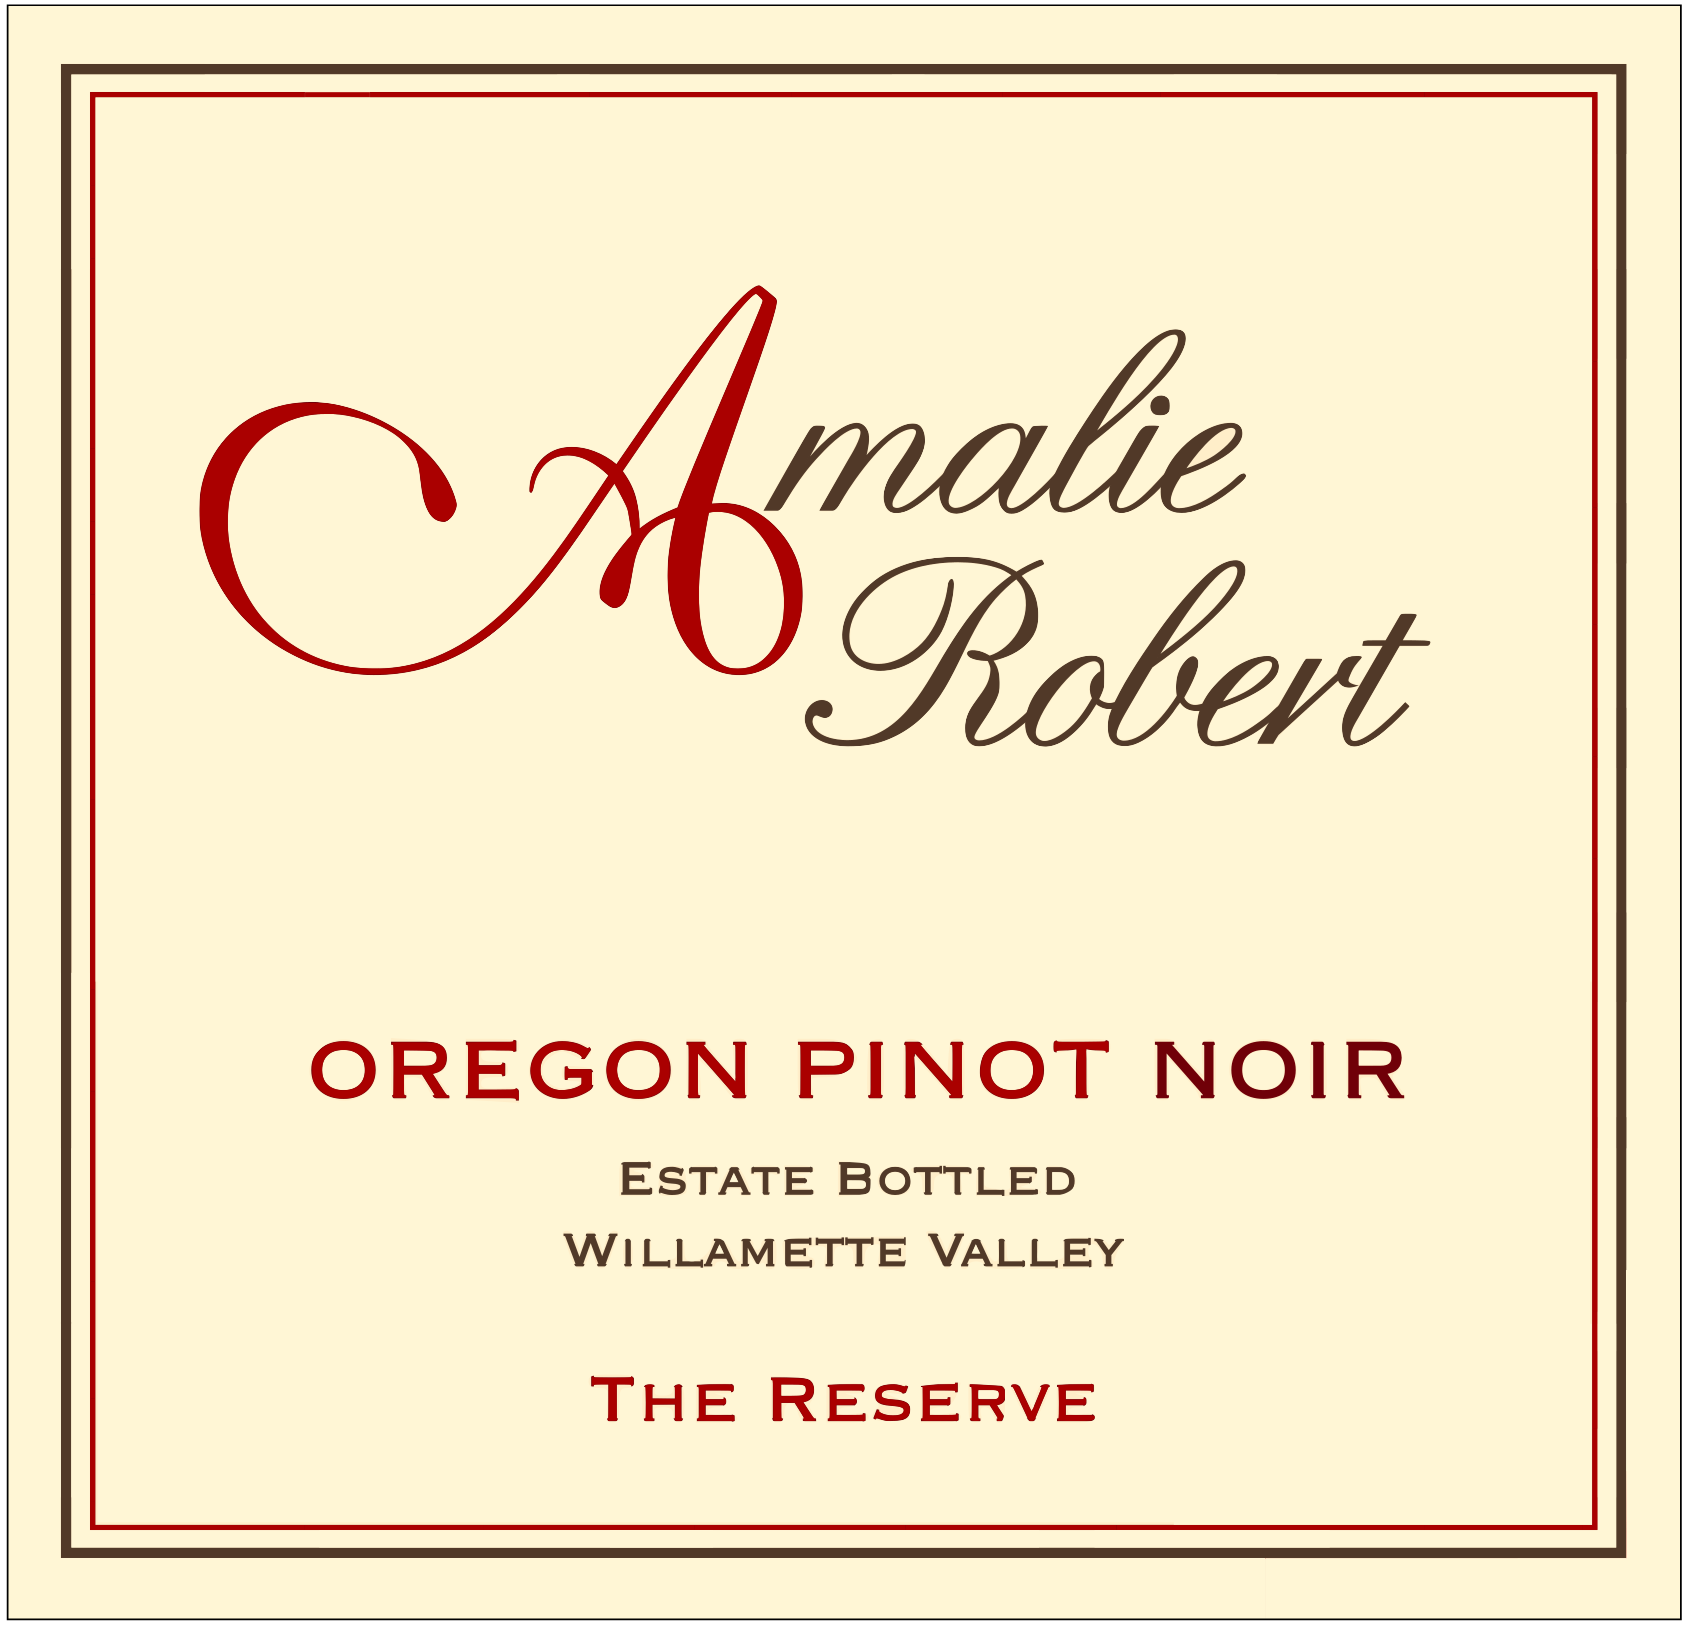 2010 The Reserve Pinot Noir MAIN